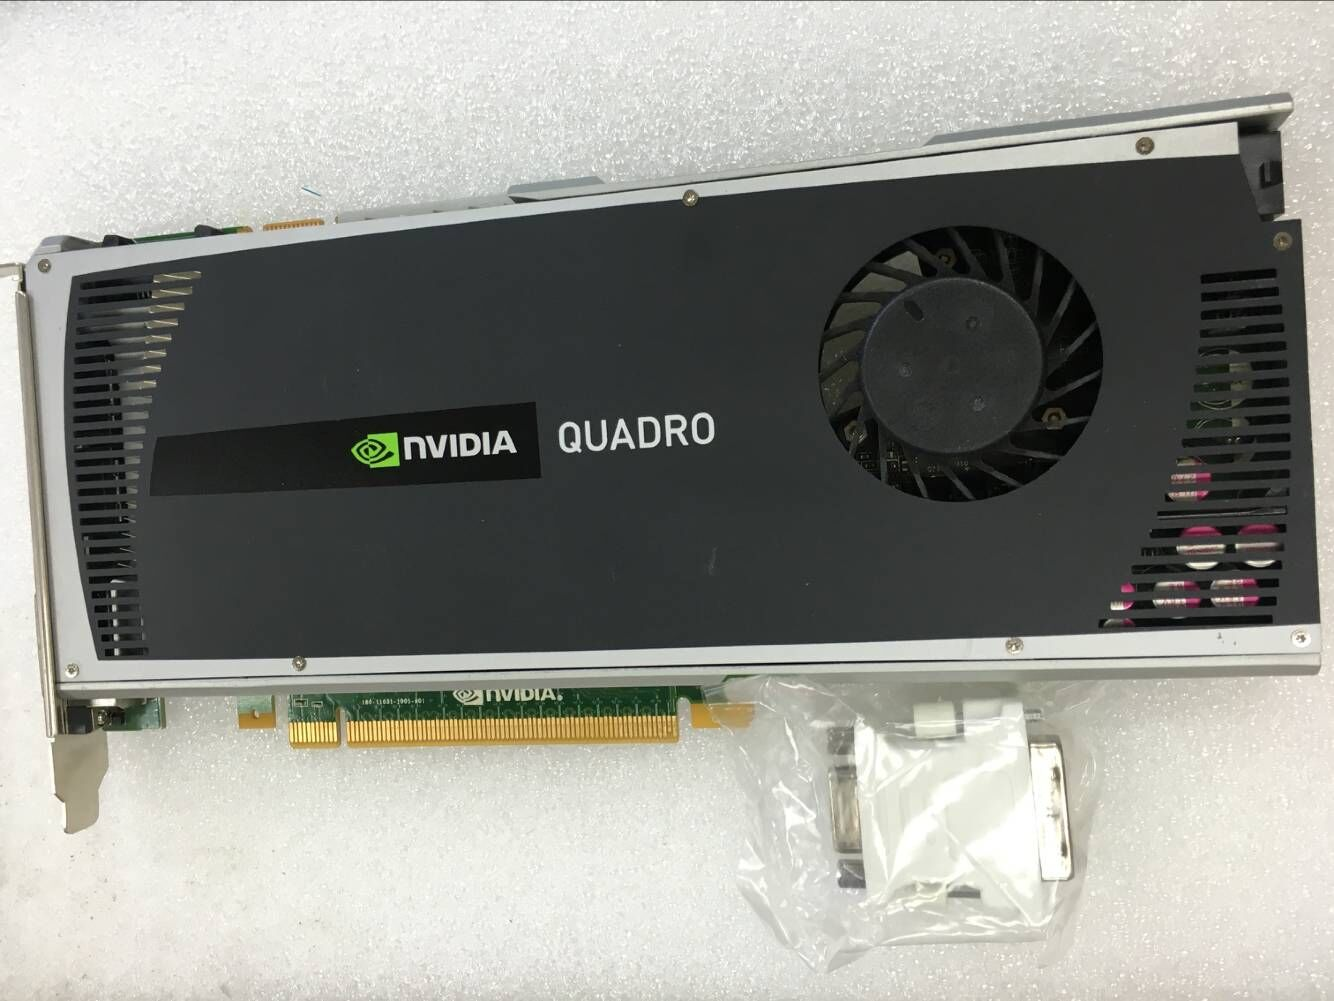 Original Quadro Q4000 graphics card 2G professional graphics card